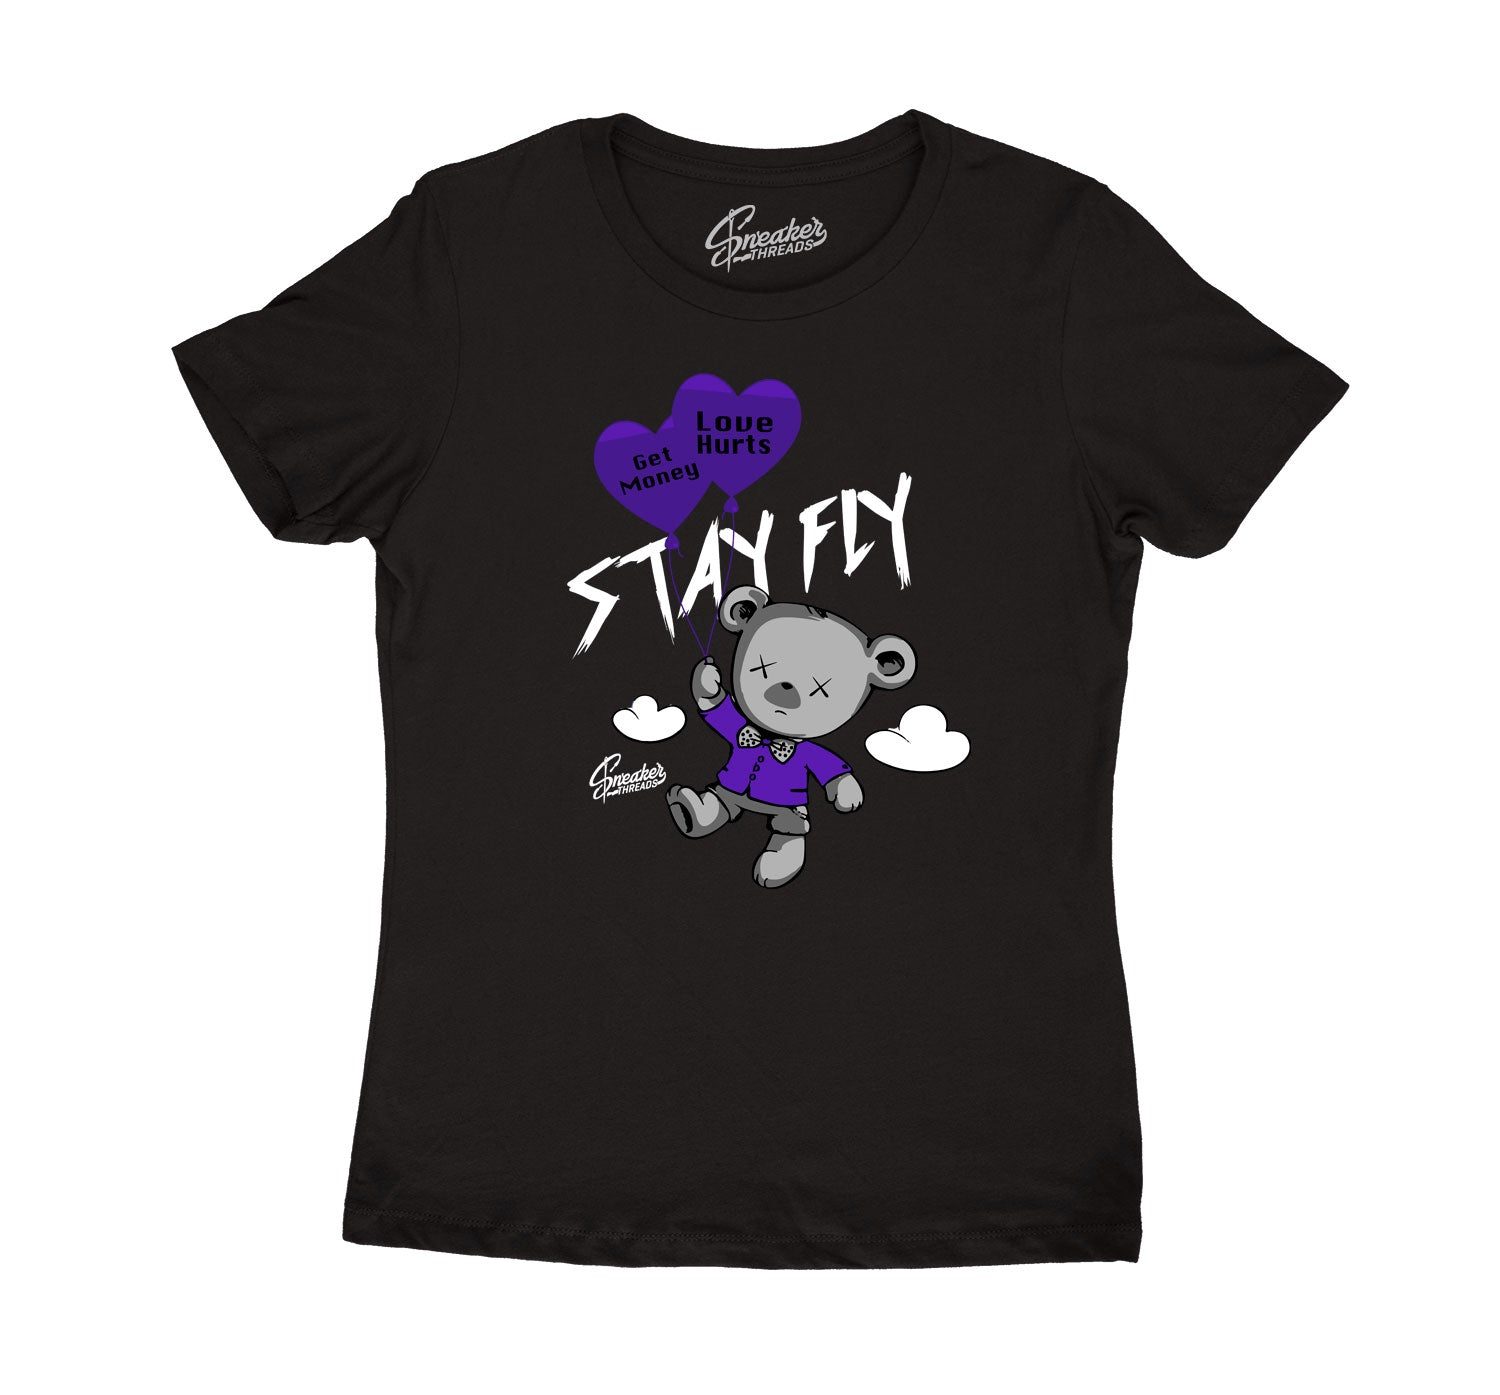 Womens - Dark Concord 12 Money Over Love Shirt